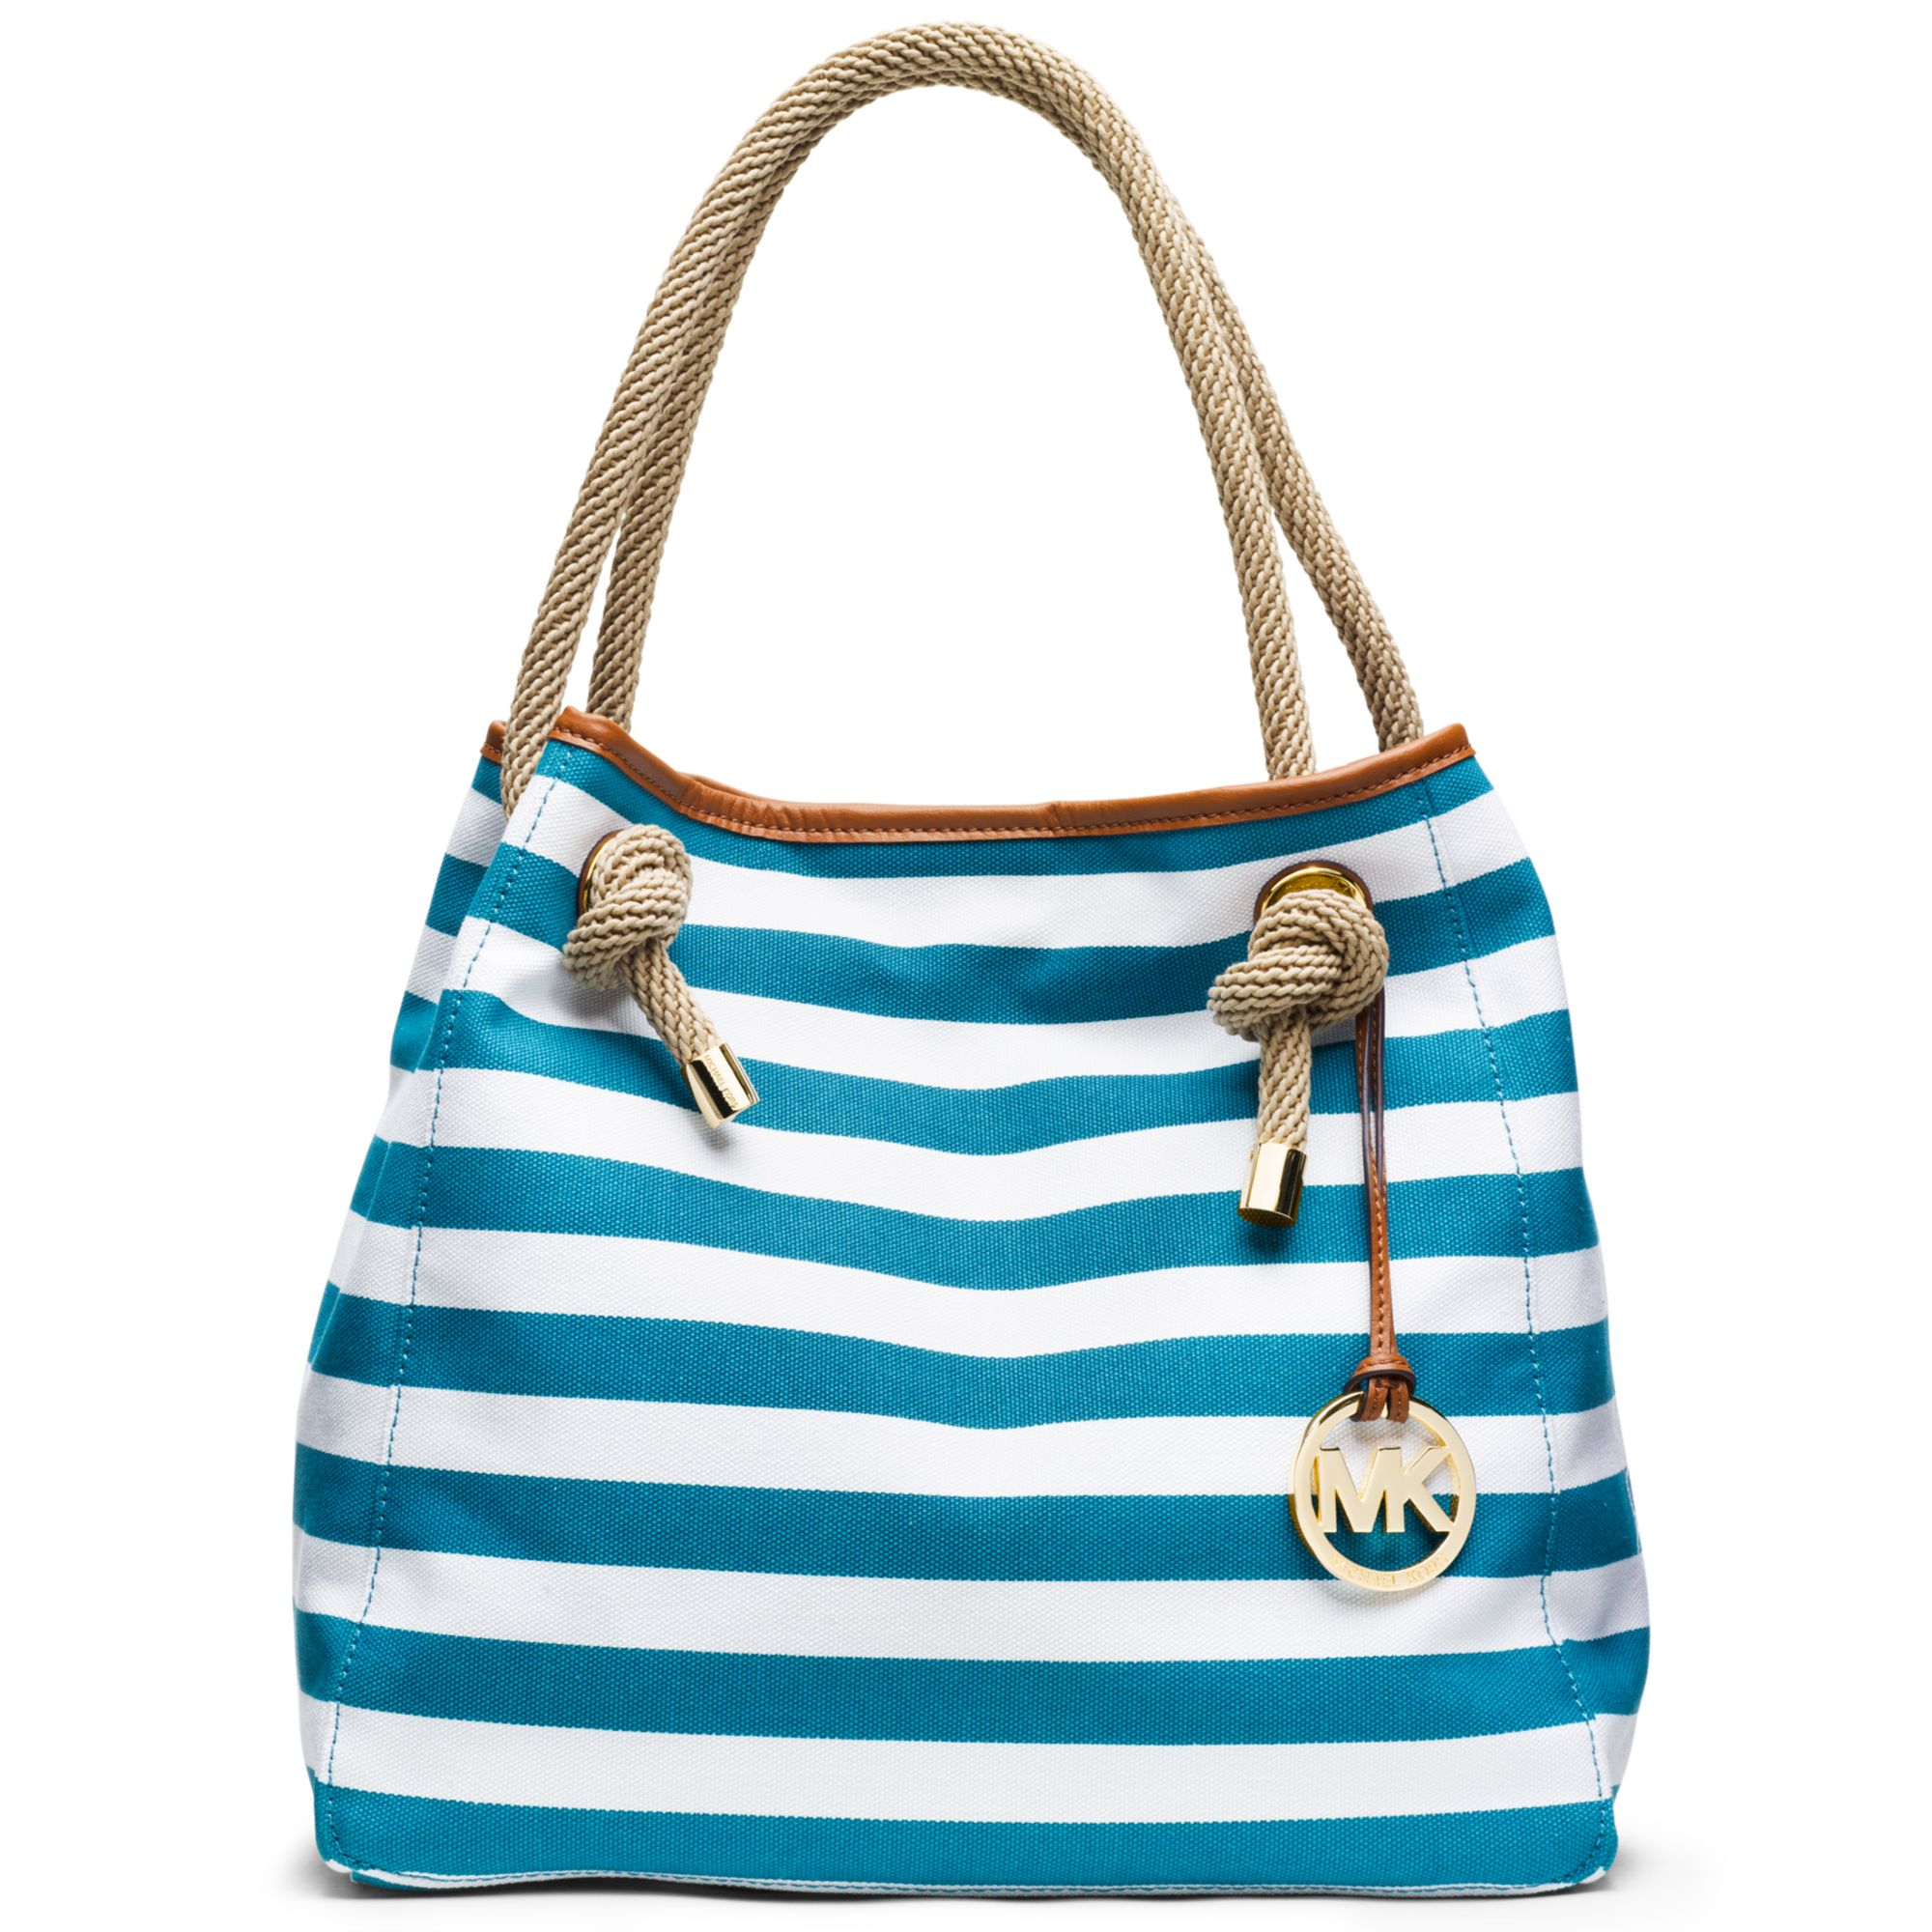 661a782bb933 Gallery. Previously sold at: Macy's · Women's Michael Kors Marina